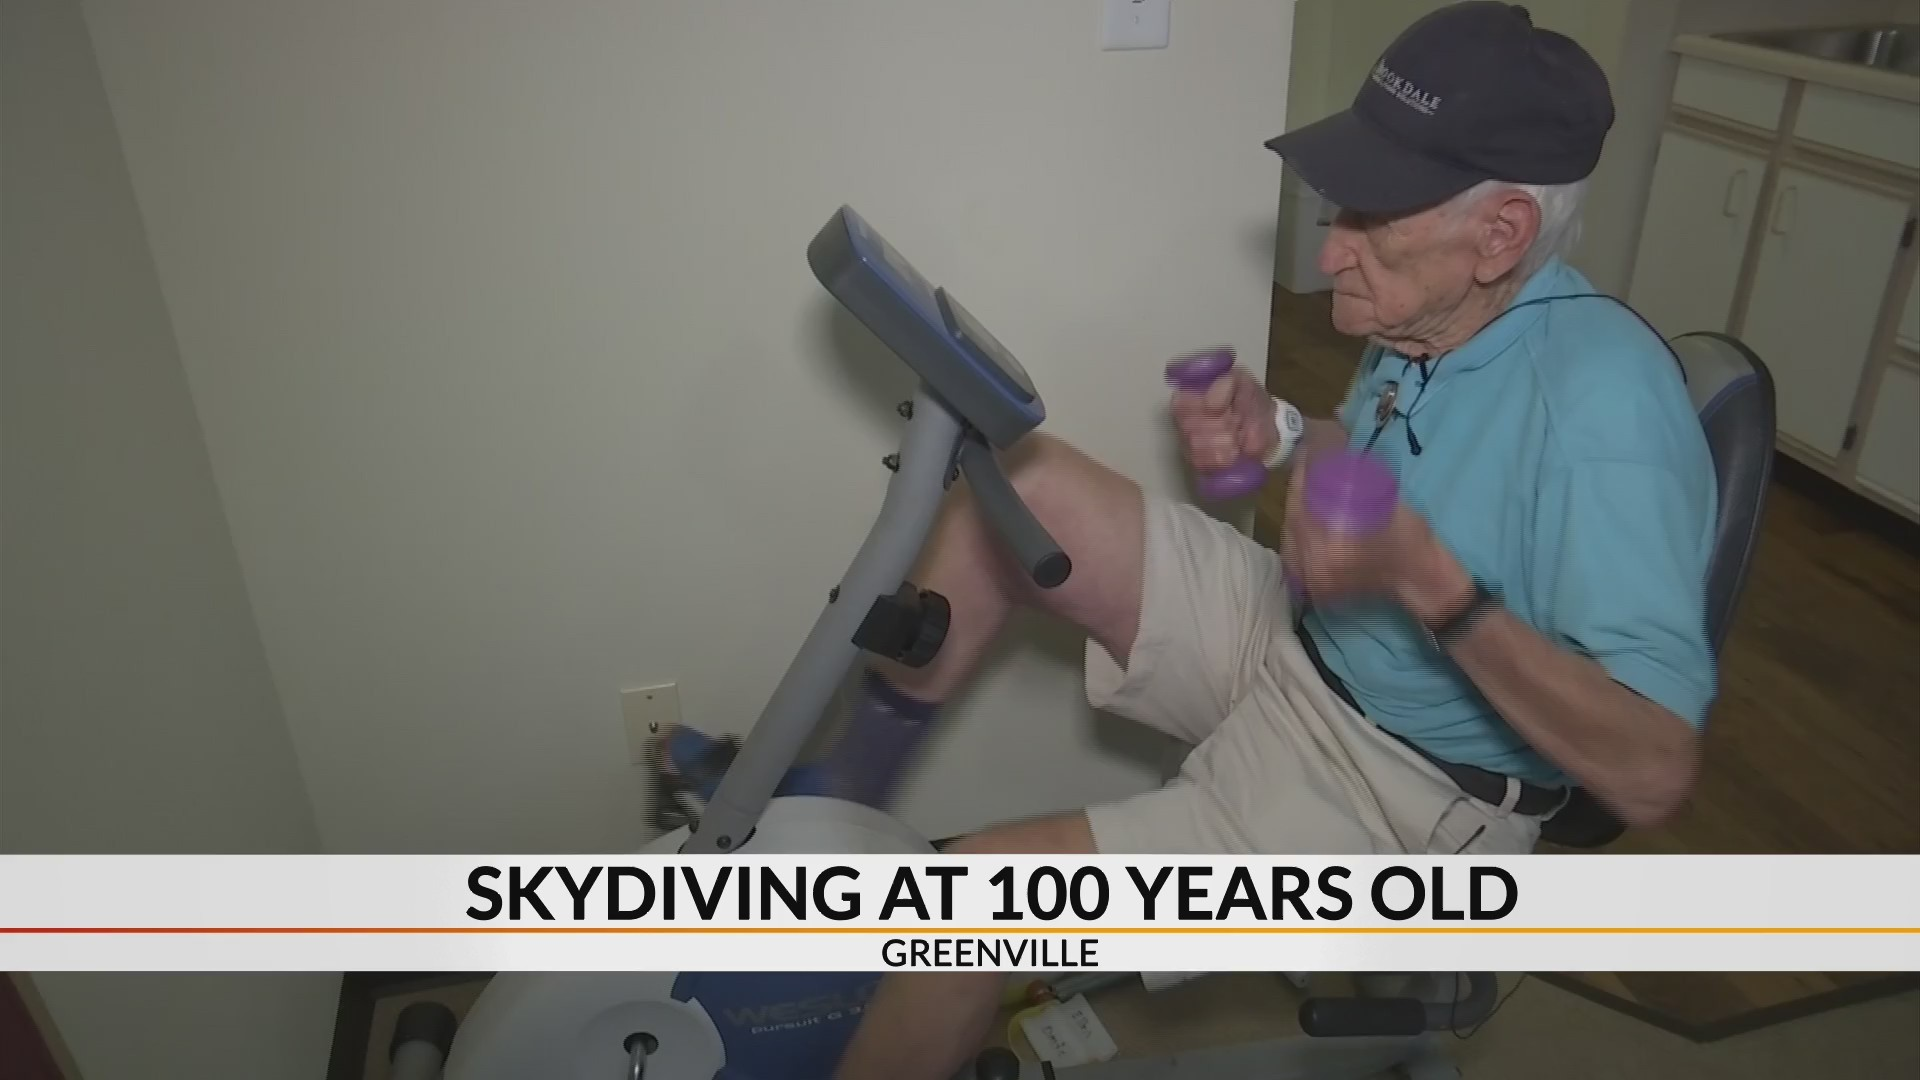 Greenville man plans to skydive for 100th birthday